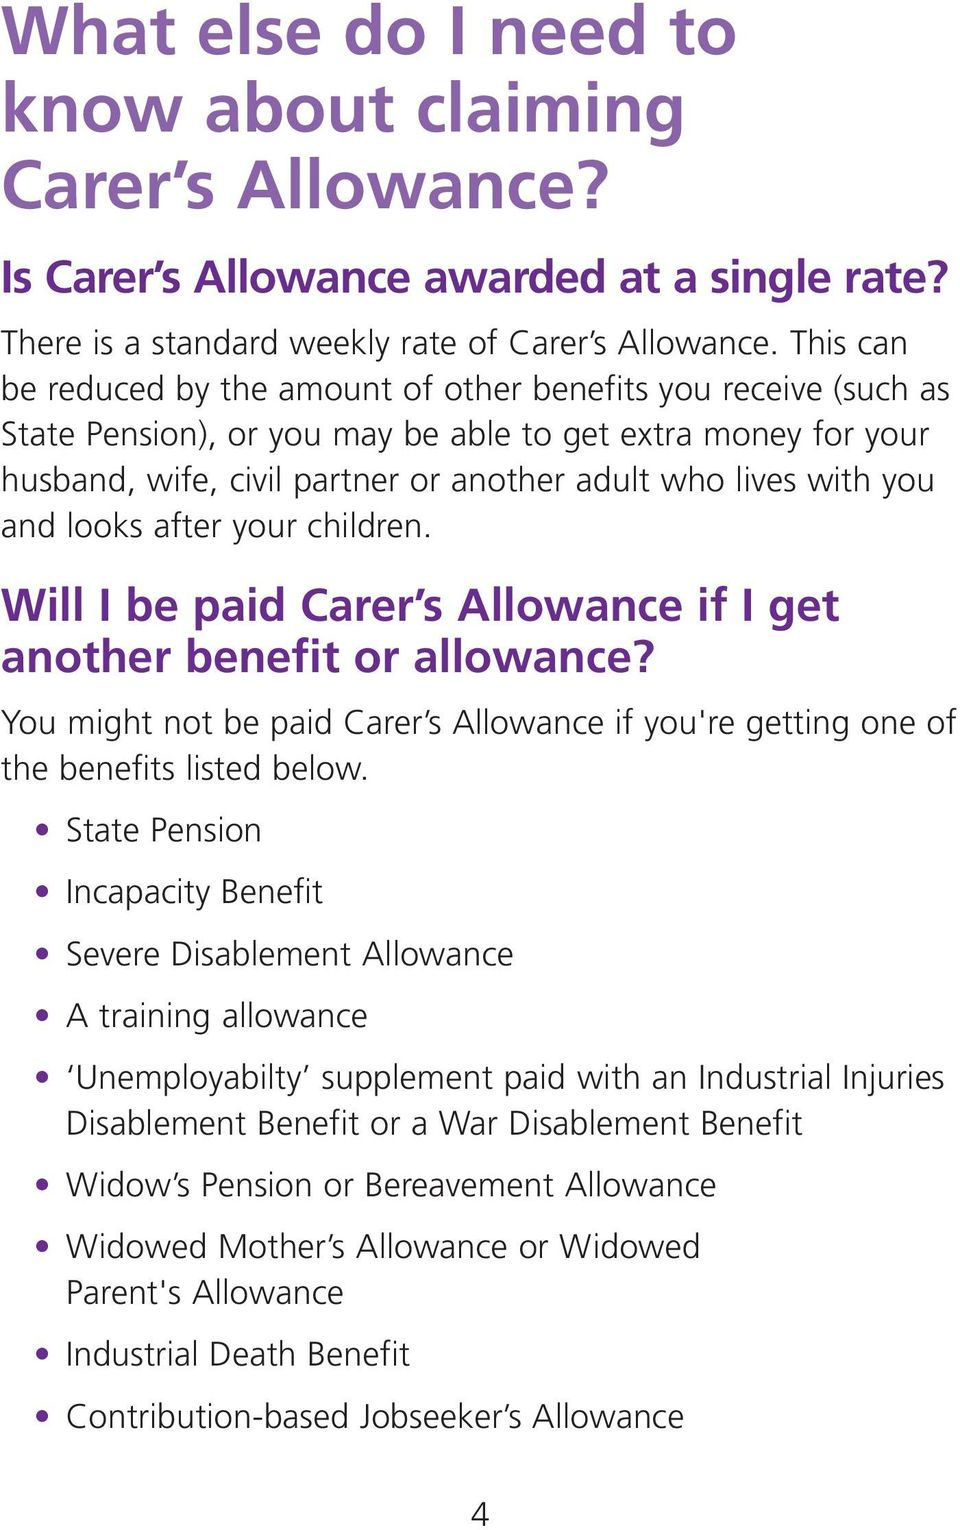 you and looks after your children. Will I be paid Carer s Allowance if I get another benefit or allowance? You might not be paid Carer s Allowance if you're getting one of the benefits listed below.